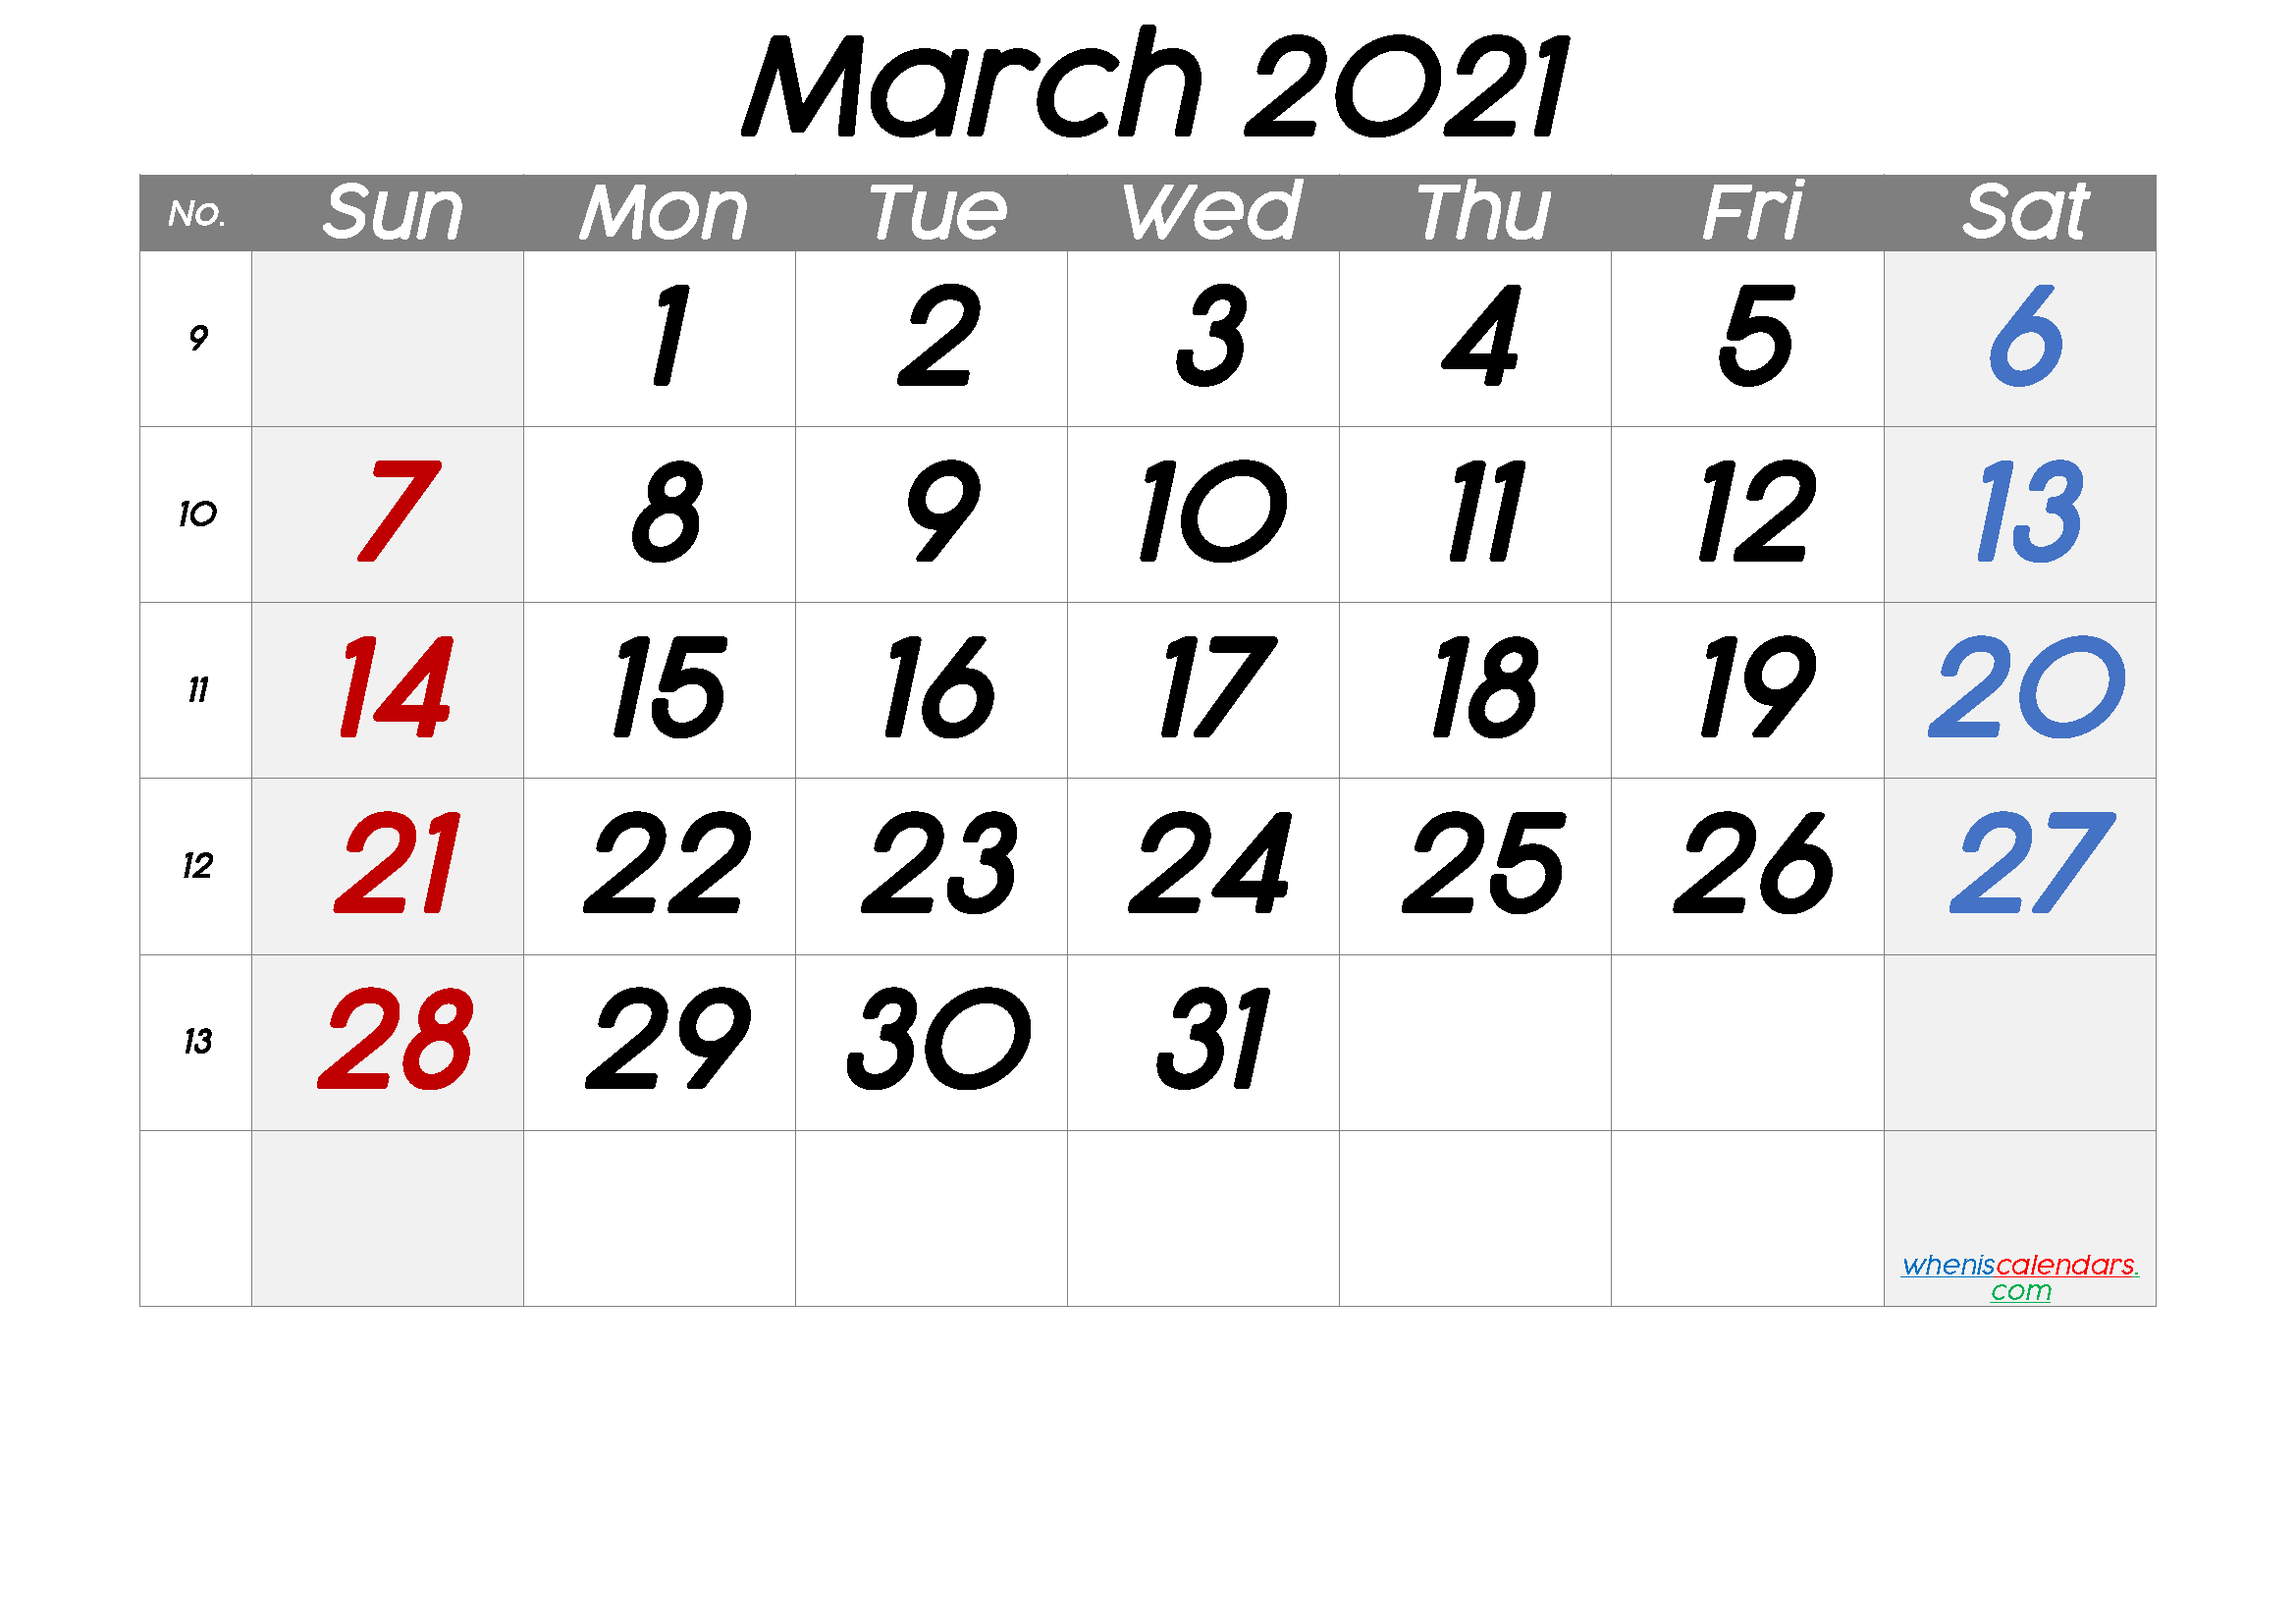 Free March 2021 Calendar with Week Numbers